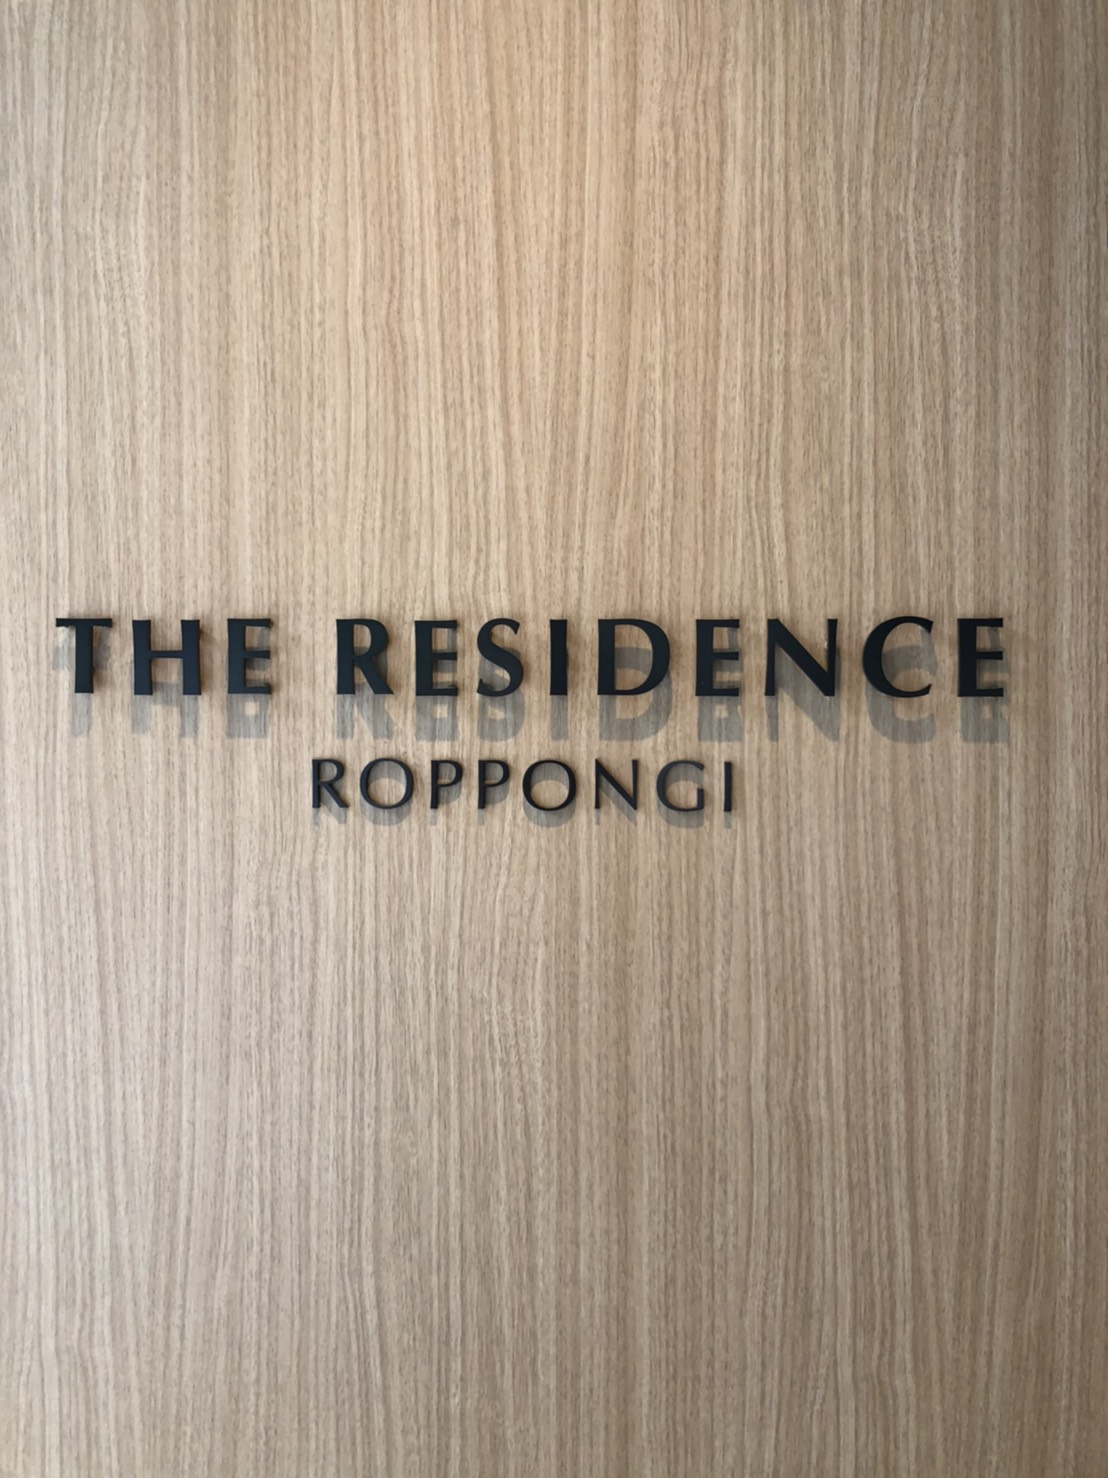 THE RESIDENCE ROPPONGIのサムネイル